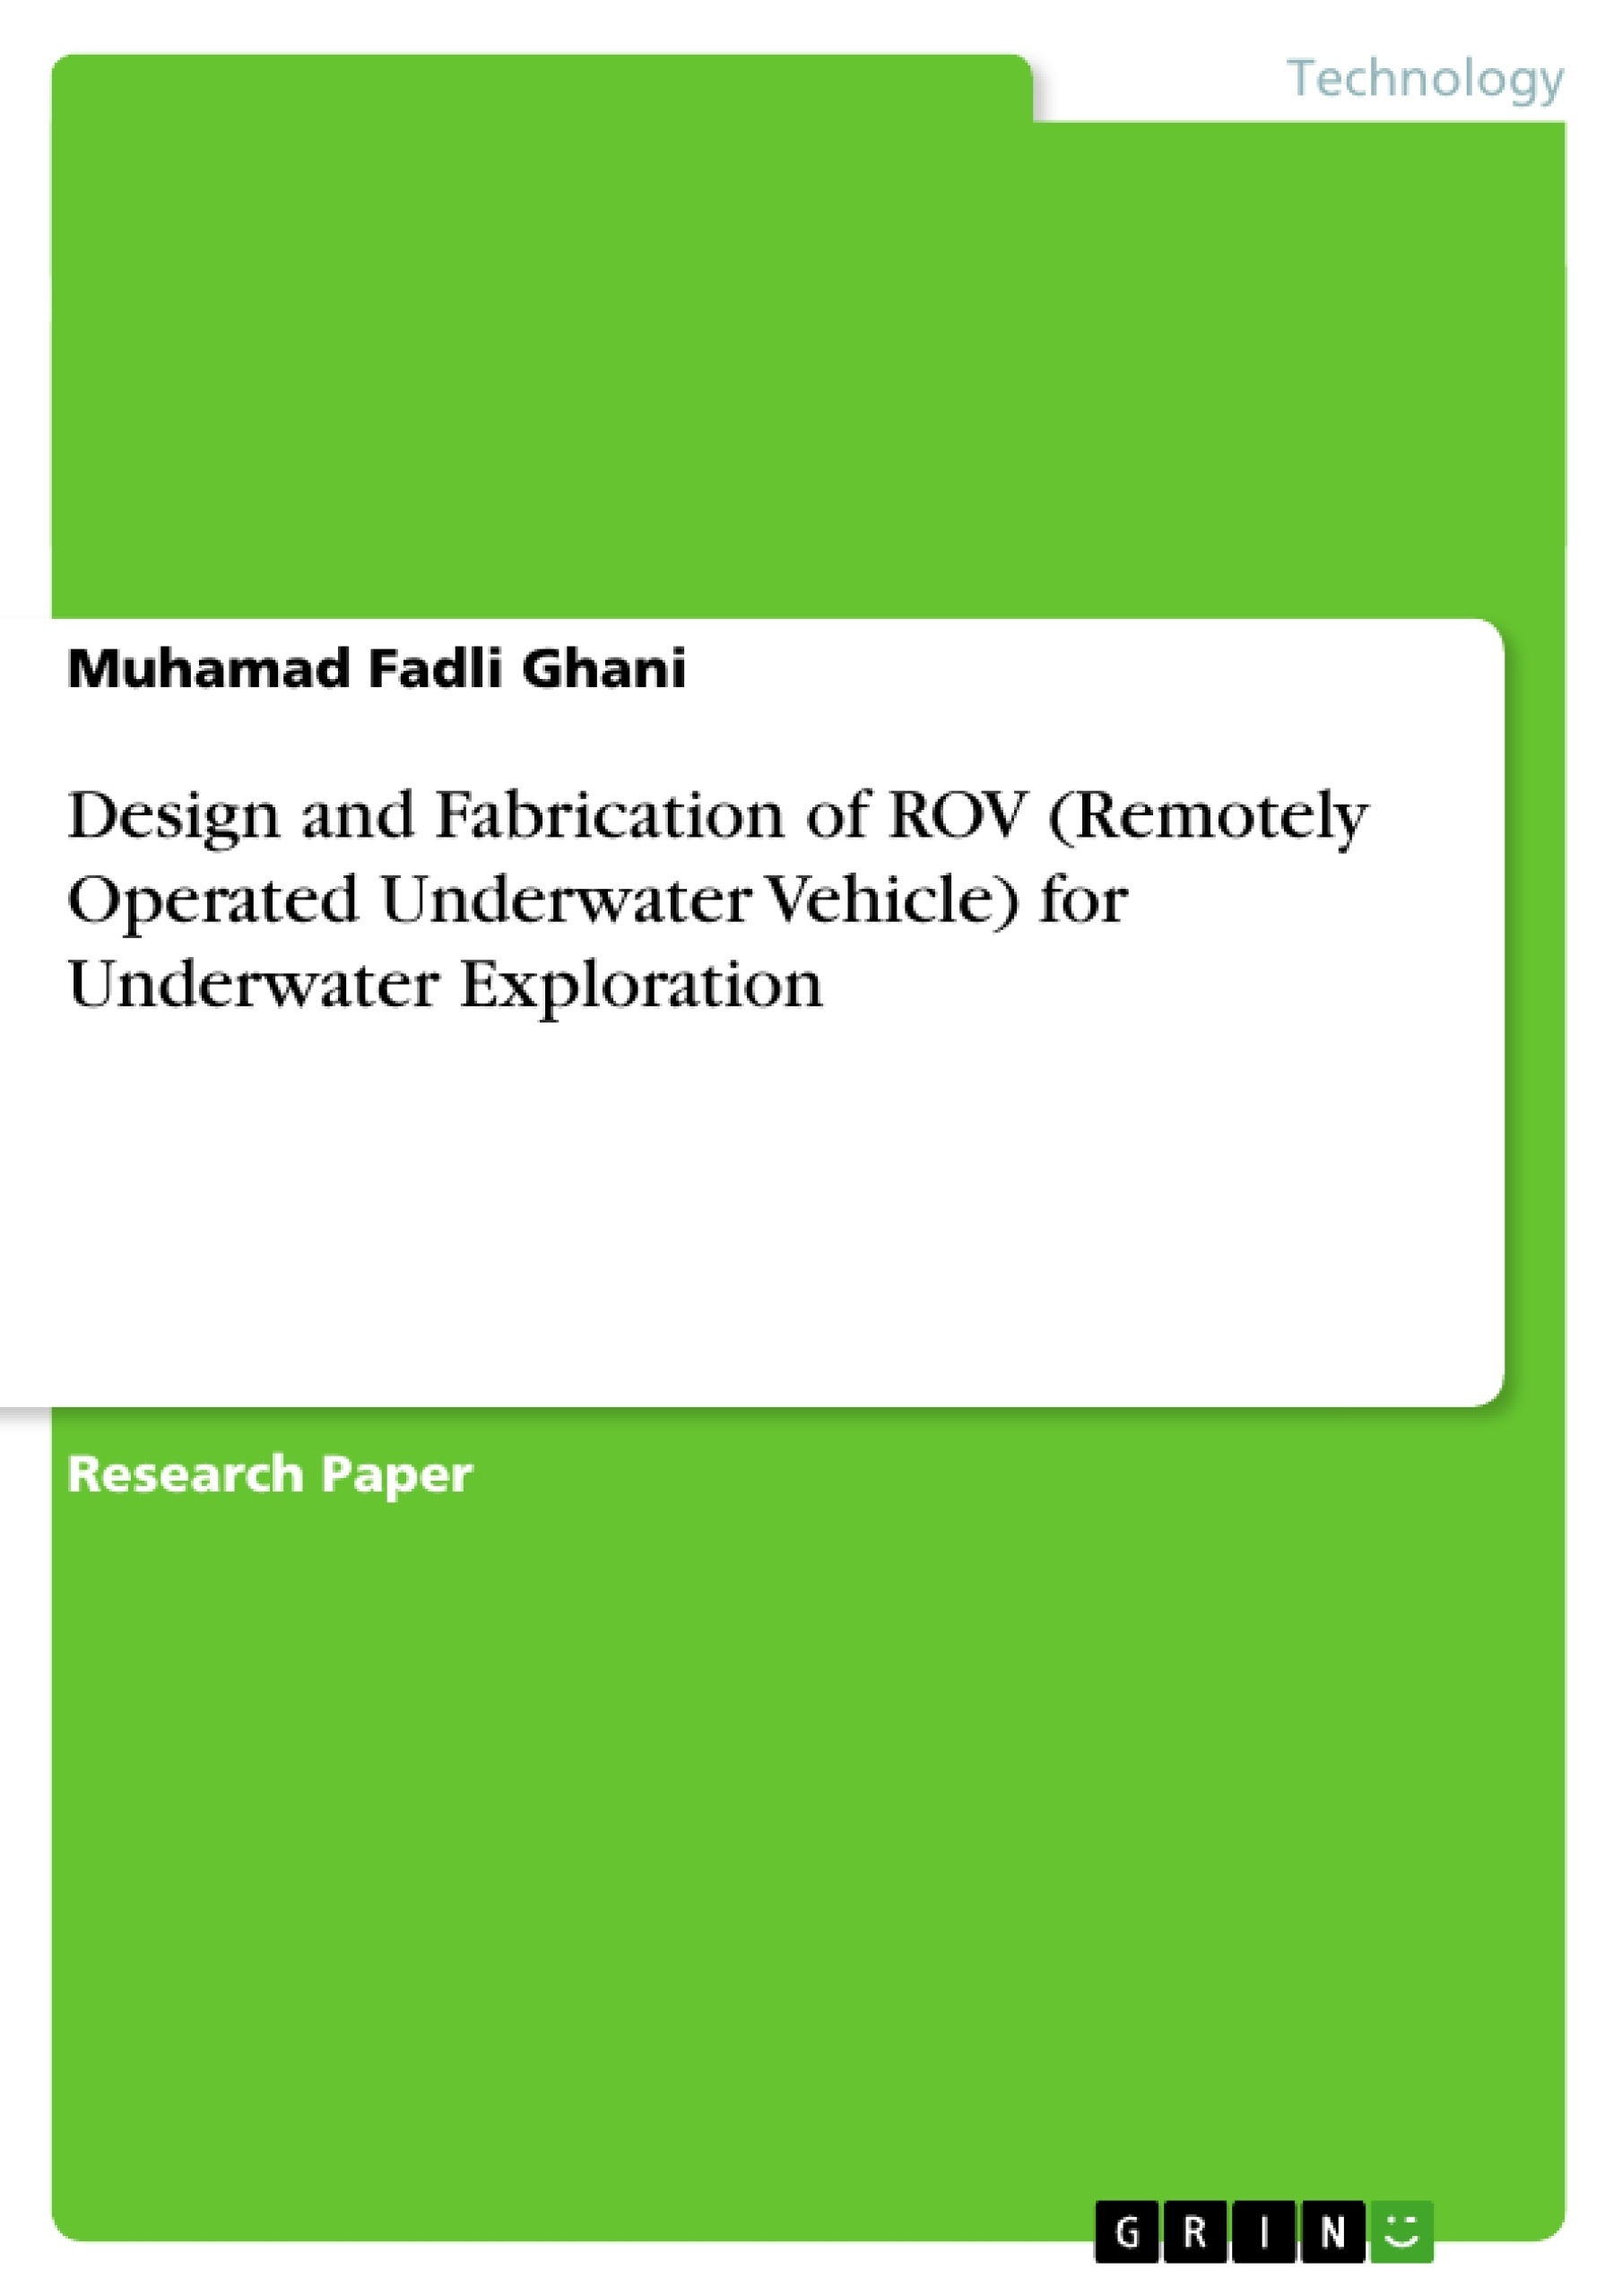 Title: Design and Fabrication of ROV (Remotely Operated Underwater Vehicle) for Underwater Exploration